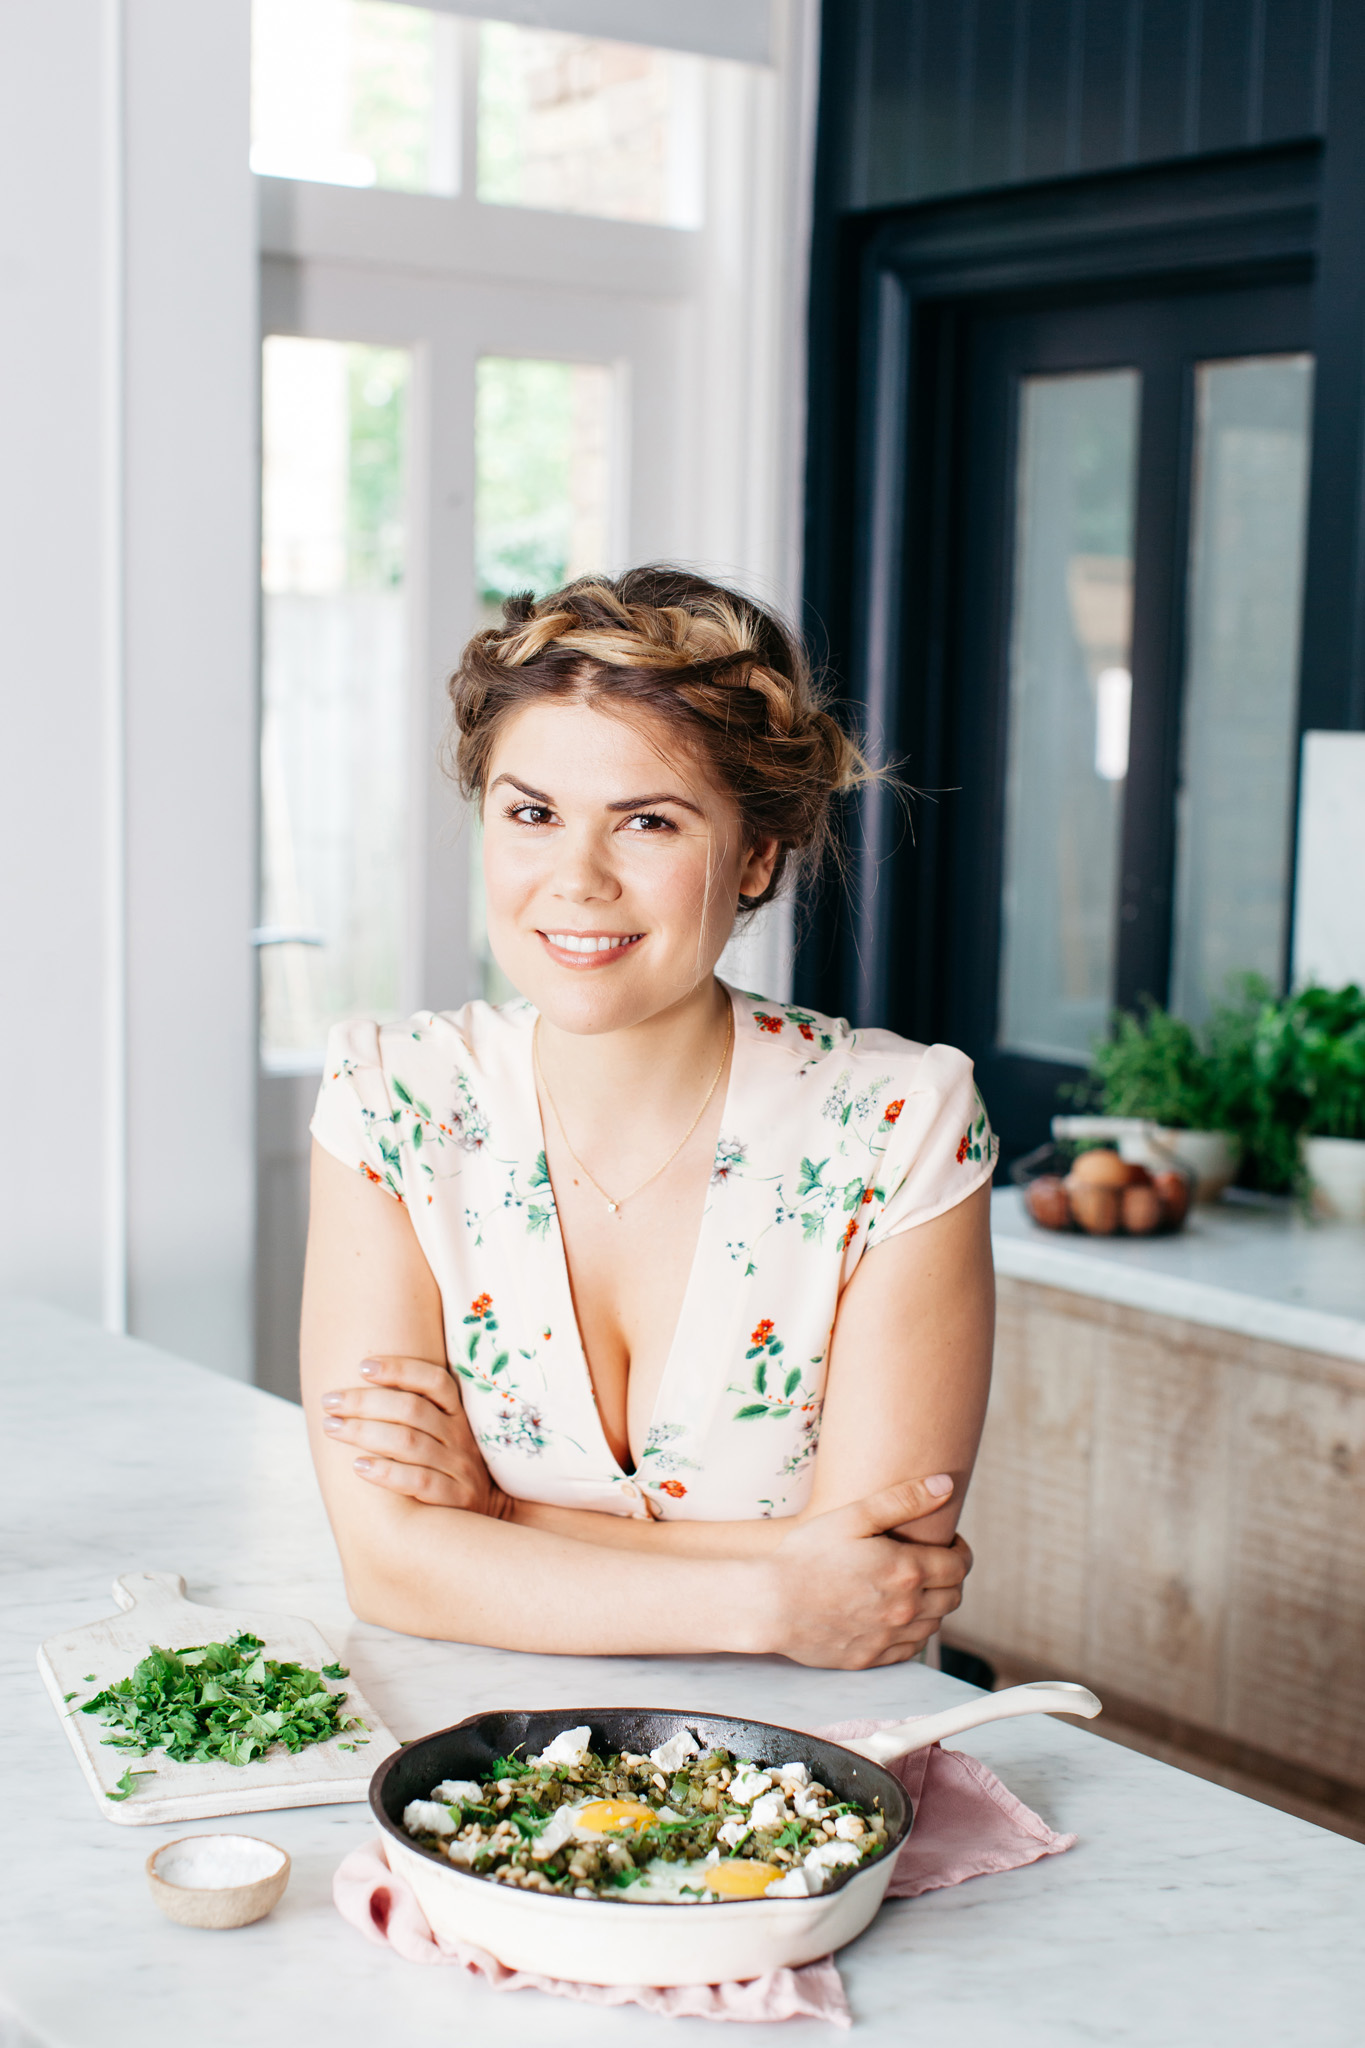 Food lifestyle photography by Emma Gutteridge for the new Madeleine Shaw book 'A Year of Beautiful Eating'